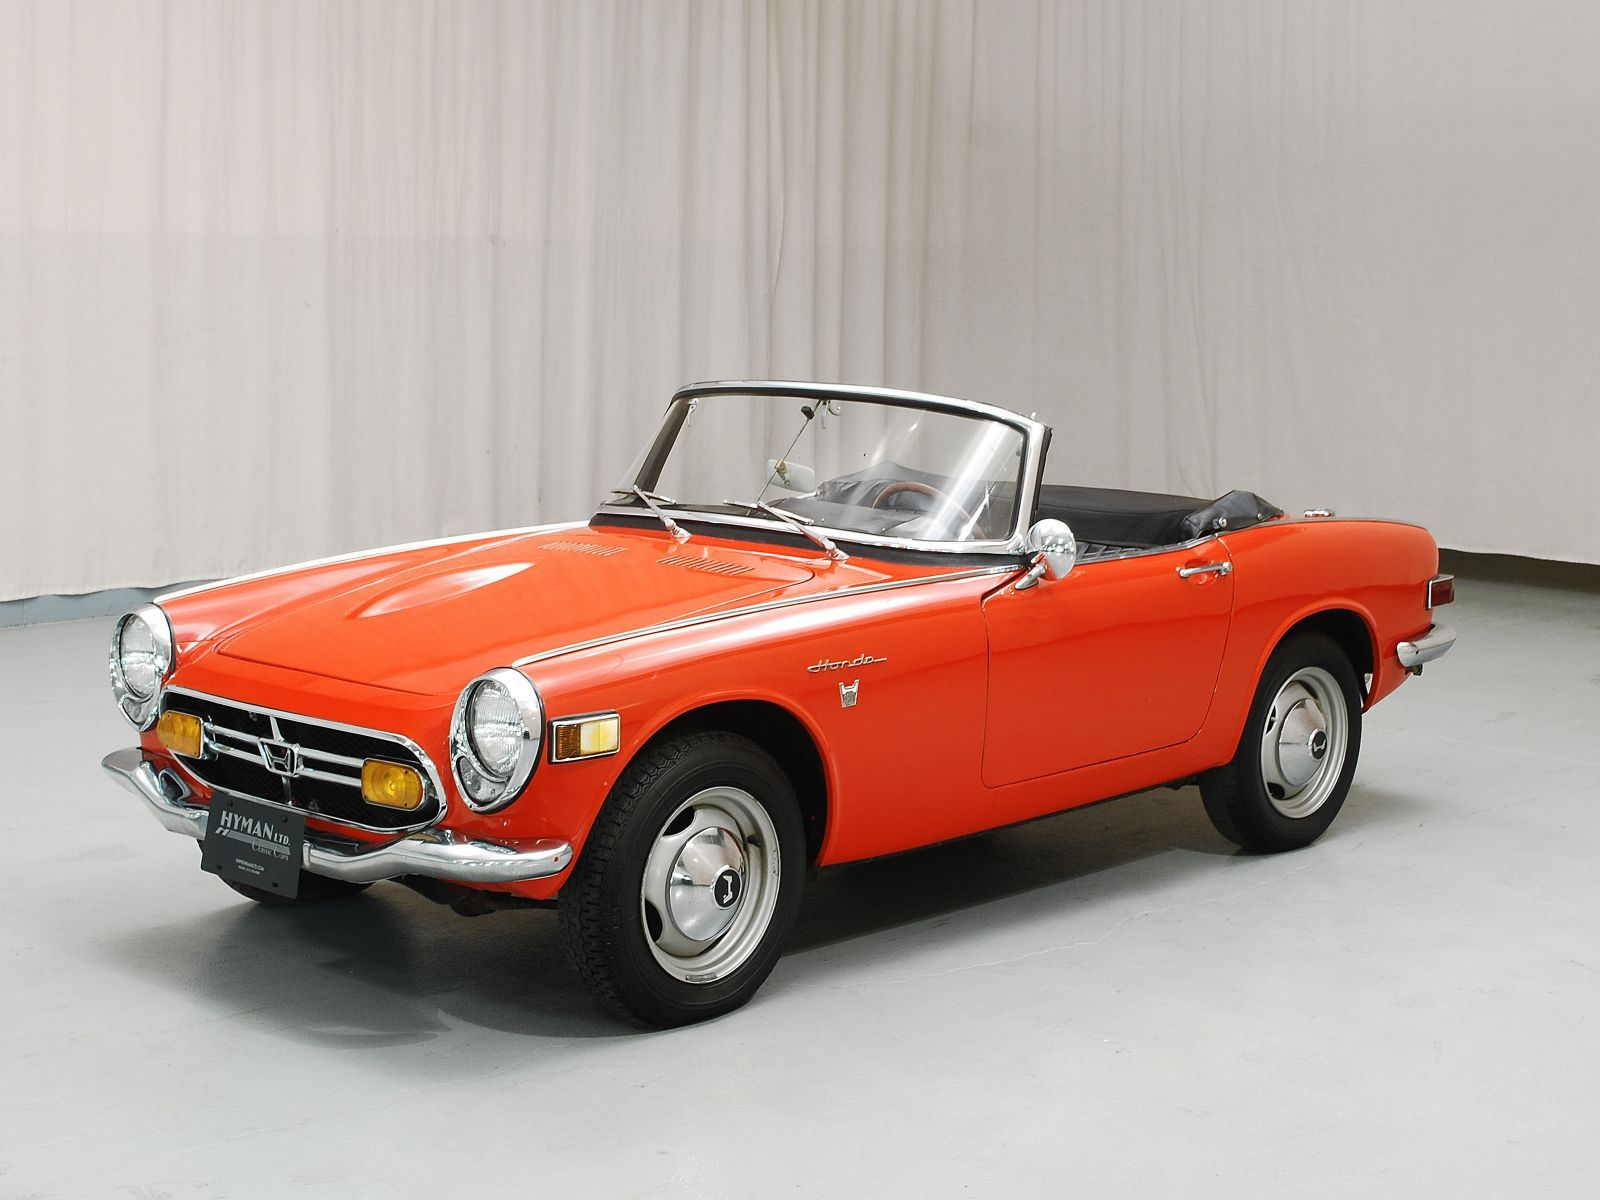 One Of Hondau0027s First Cars! 1965 Honda S600 Roadster! So Far Ahead Of Its  Time.. | Gorgeous Cars | Pinterest | Honda S, Honda And Cars